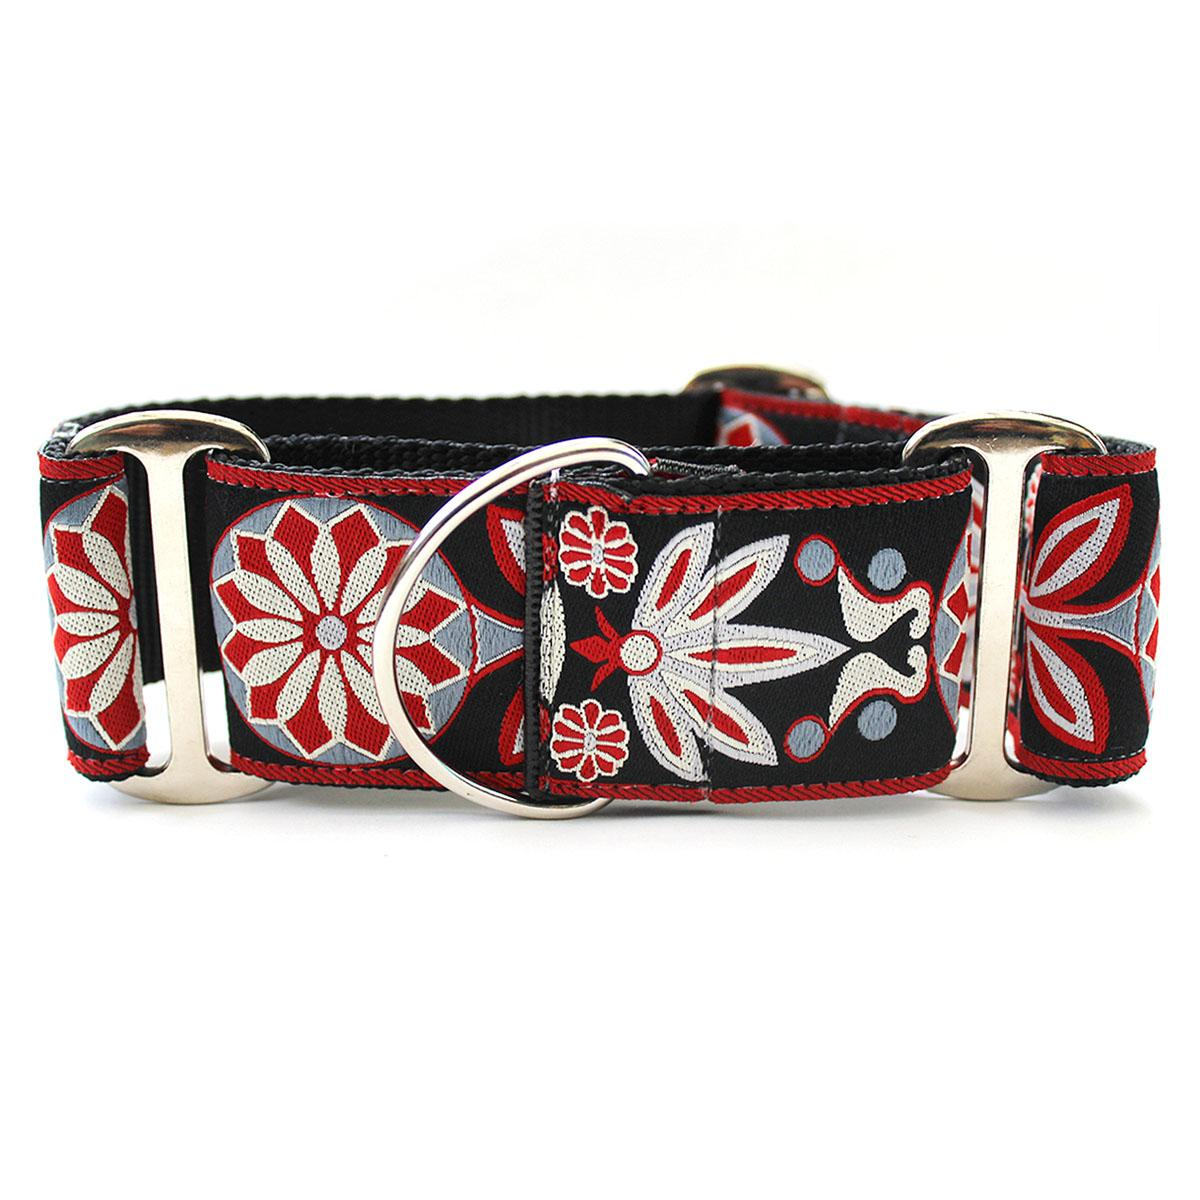 Mandala Star Wide Martingale Dog Collar by Diva Dog - Carnelian Red